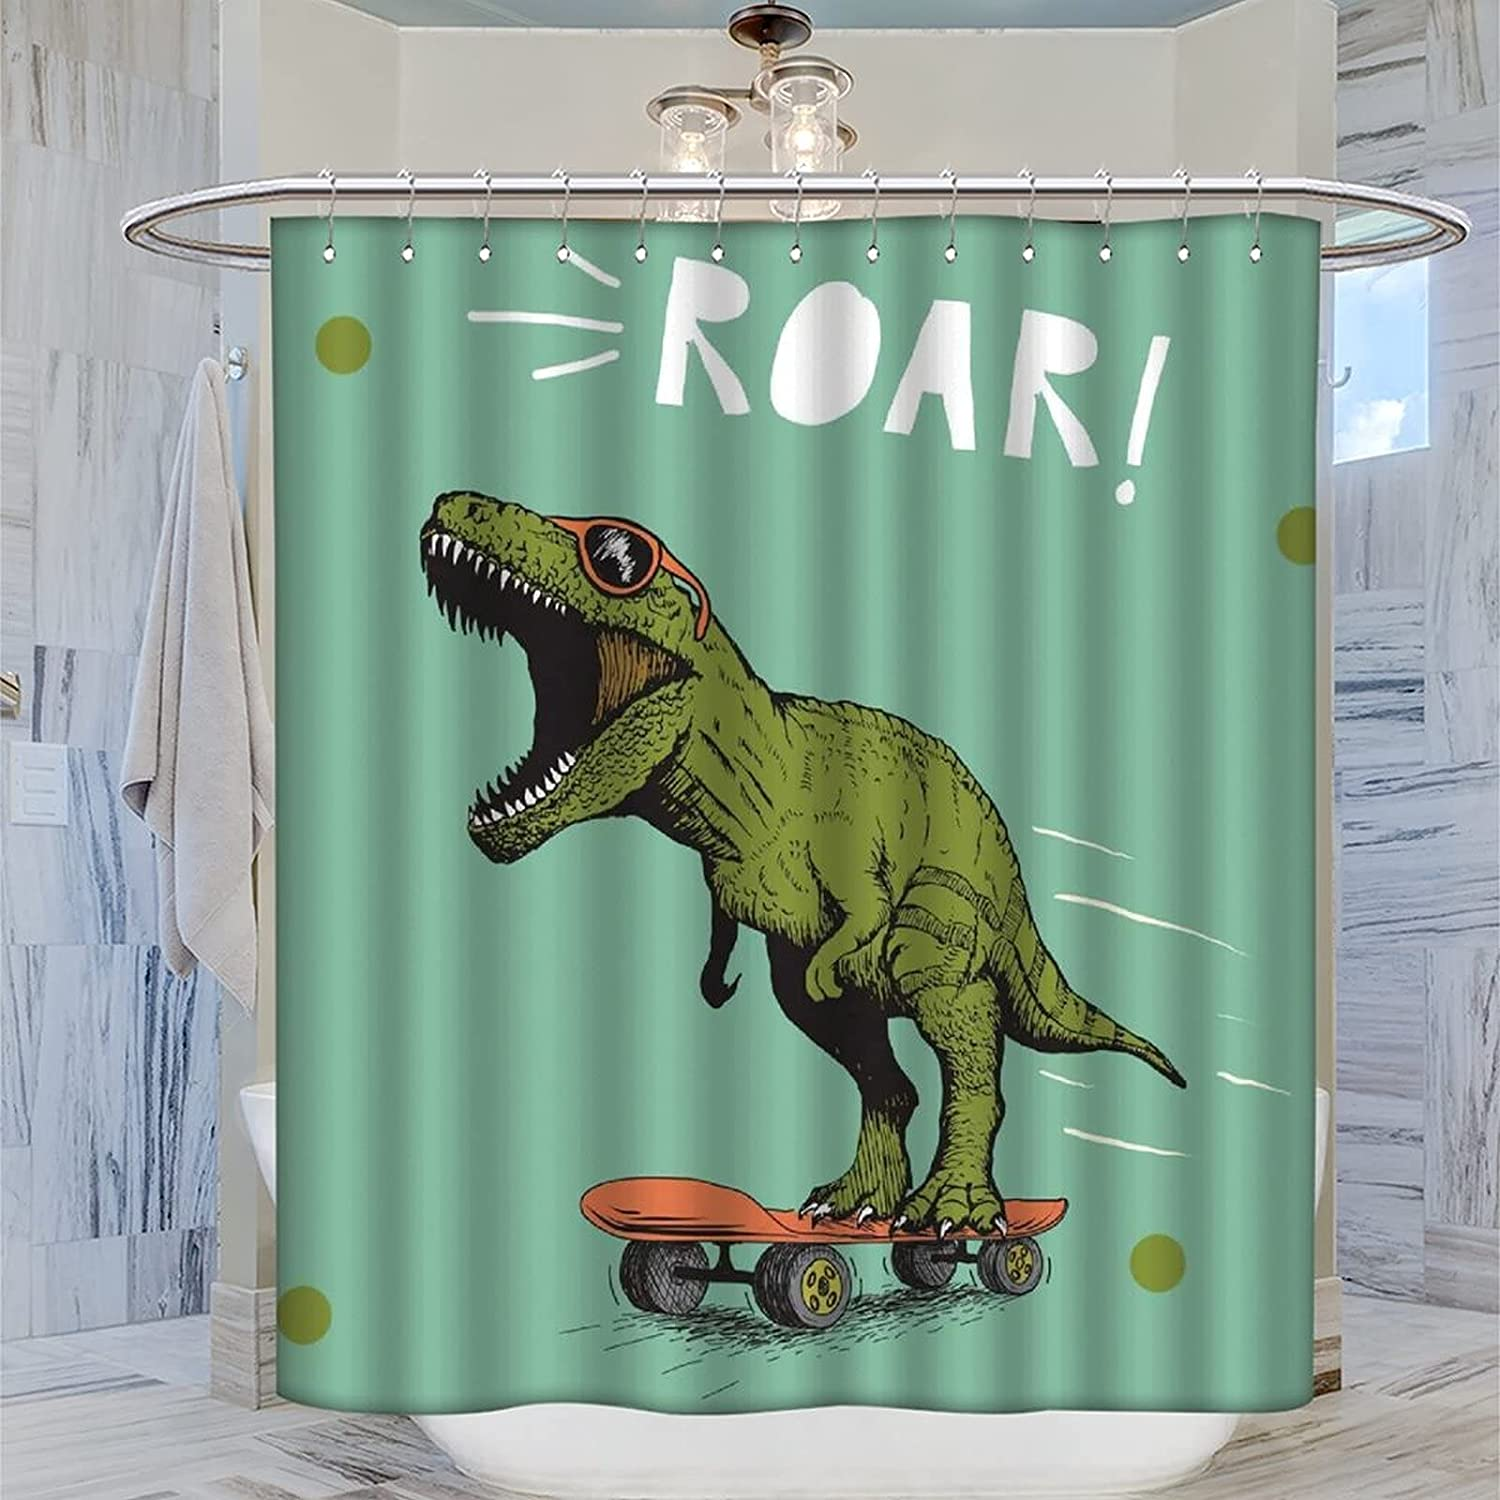 AOKIA Funny Shower Curtain lowest price Cute Skateboards Many popular brands on Dinosaurs Roaring